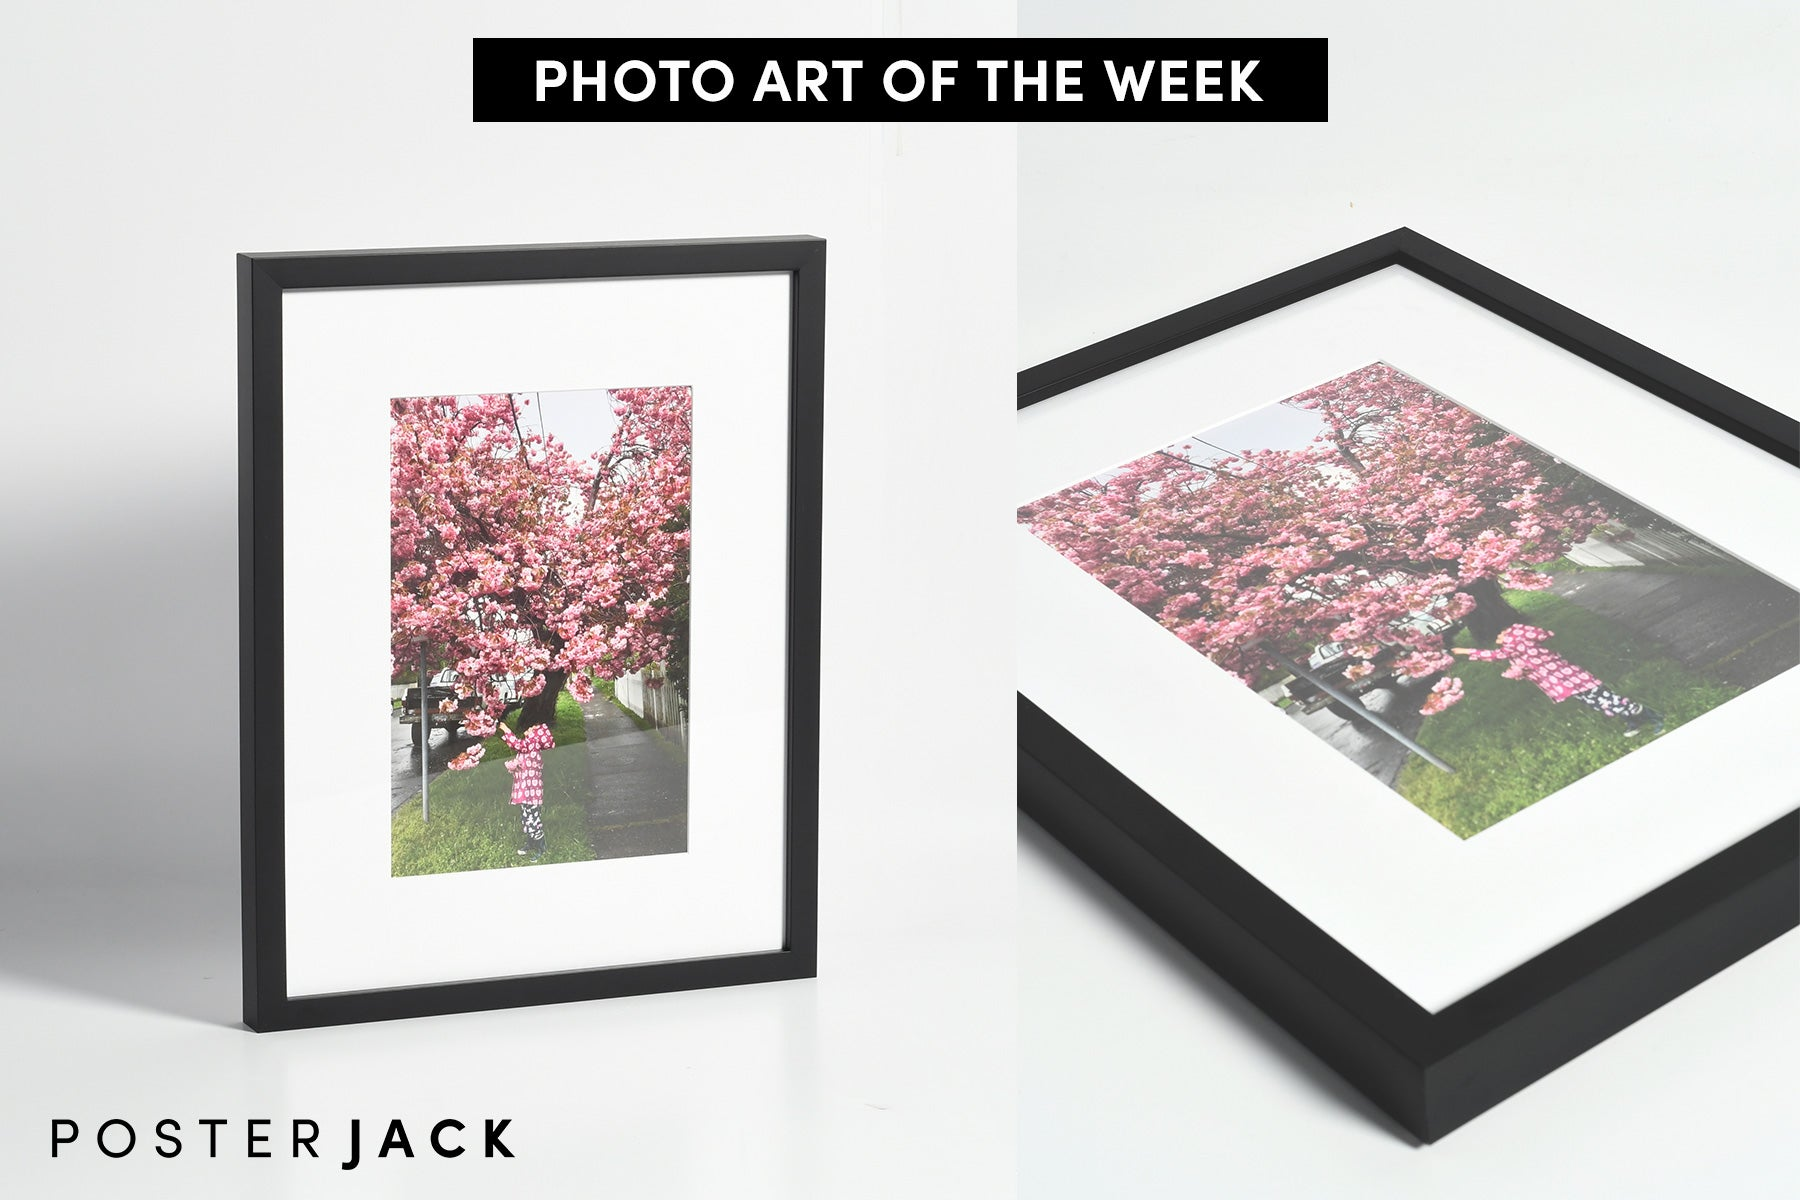 Posterjack Framed Print Photo of Little Girl and Cherry Tree Blossoms in Victoria, BC, Canada